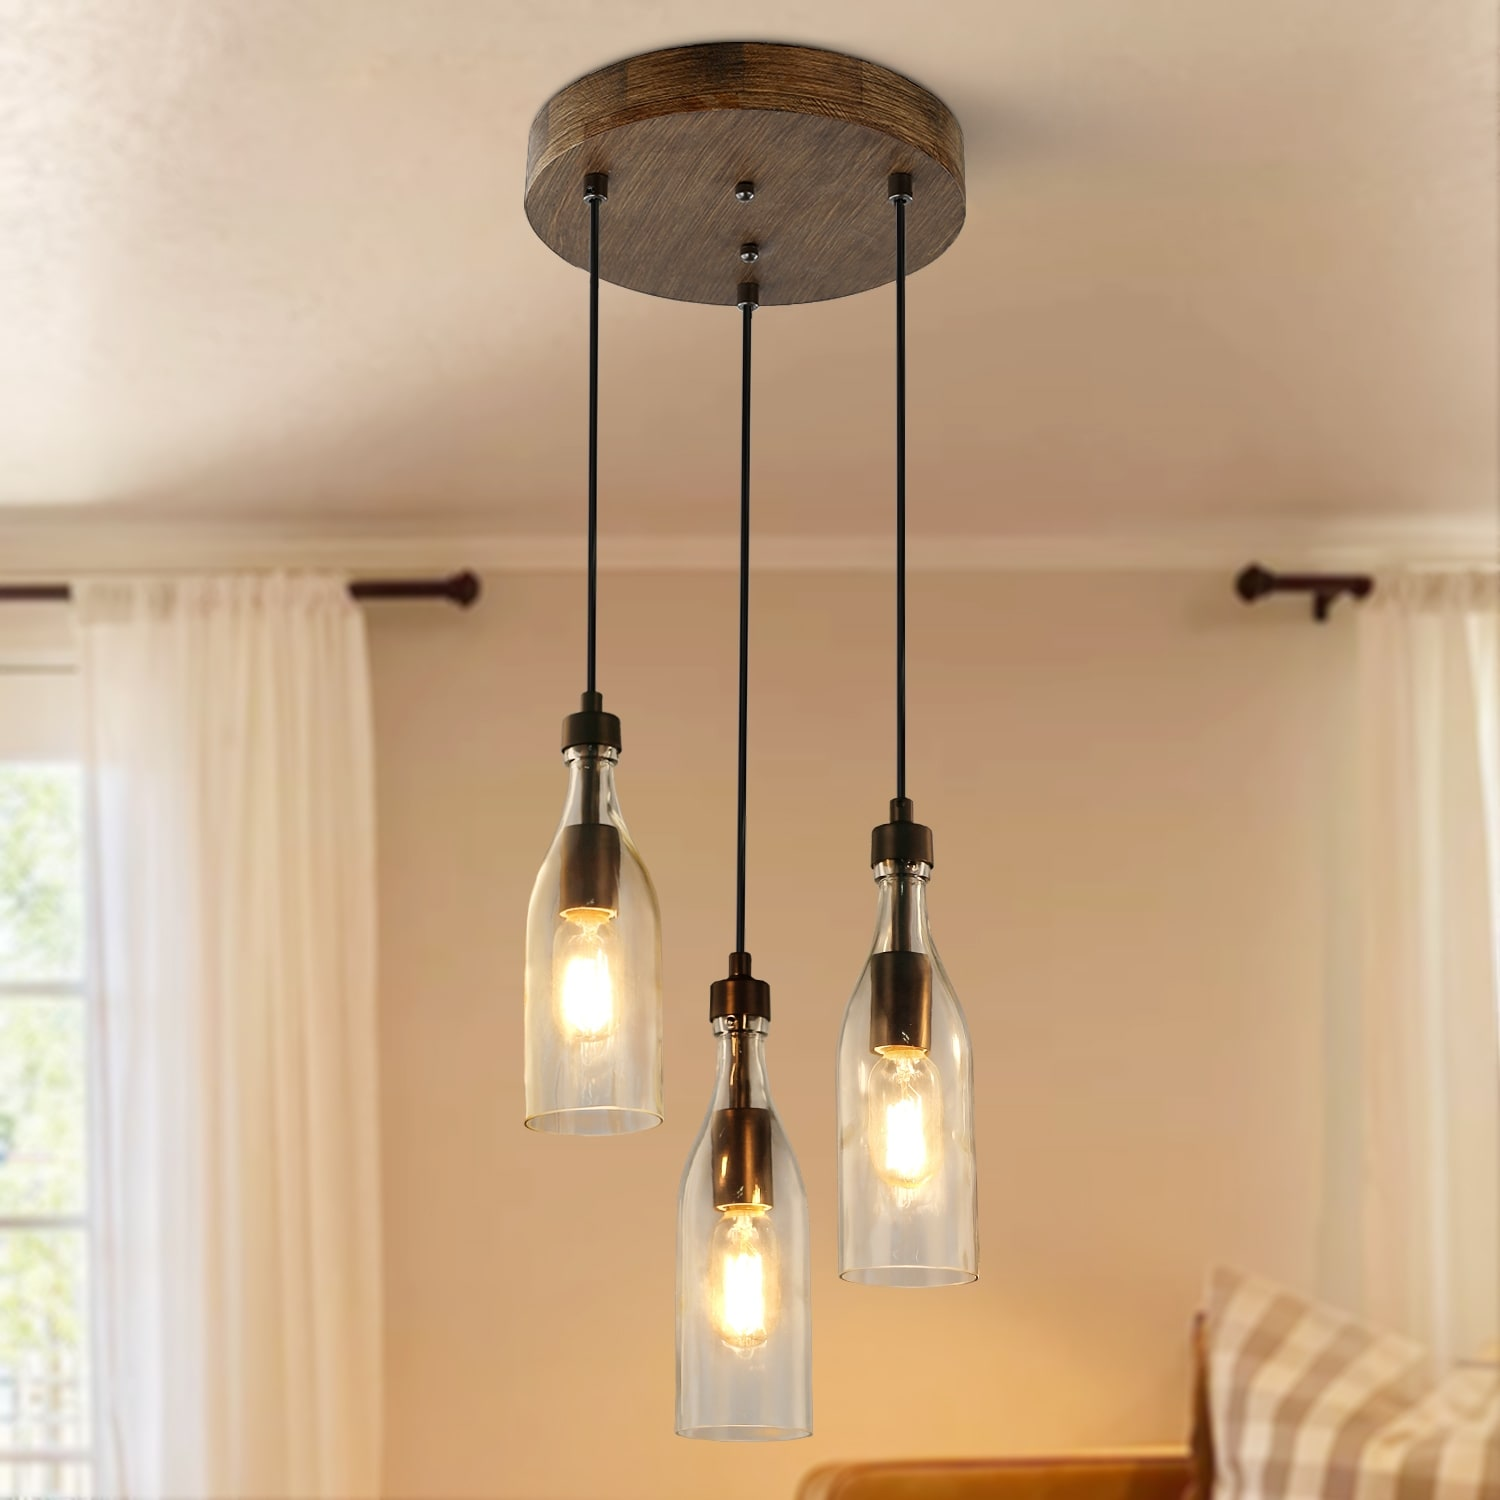 Shop Farmhouse 3 Lights Kitchen Island Lighting Pendant Chandelier Ceiling Lamp D11 X H11 2 Overstock 27621032